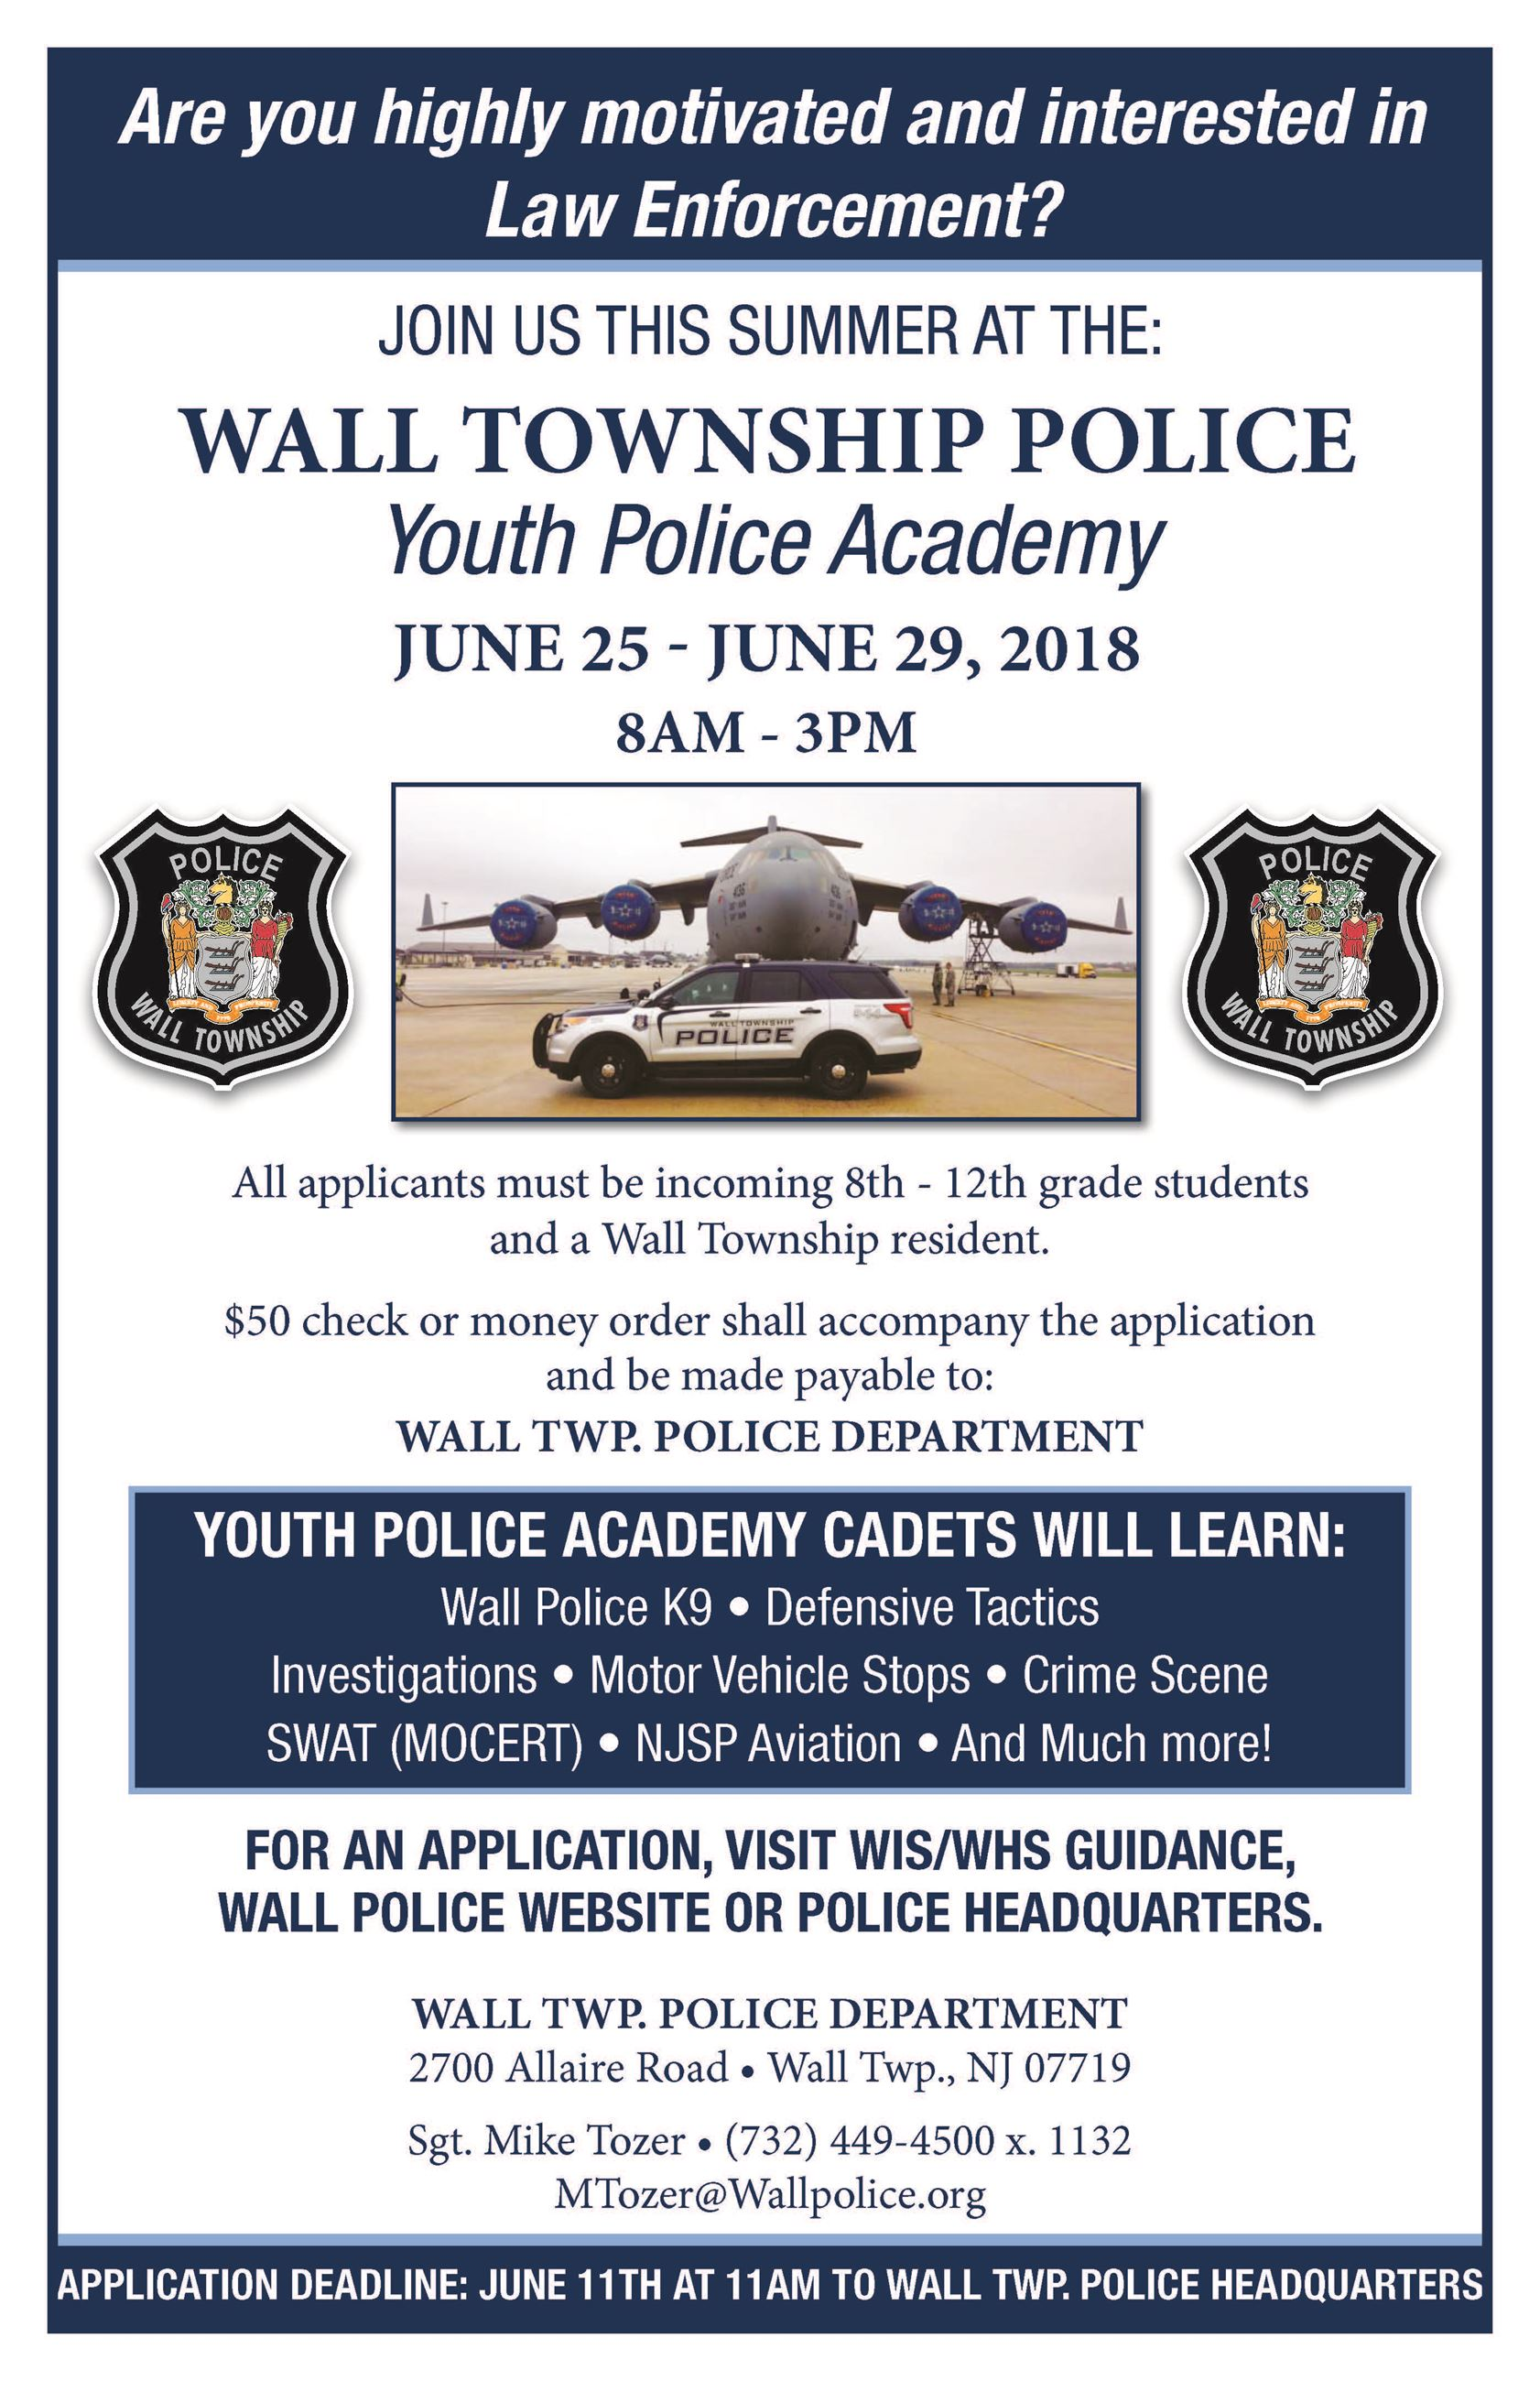 WTPD 2018 Youth Police Academy Poster